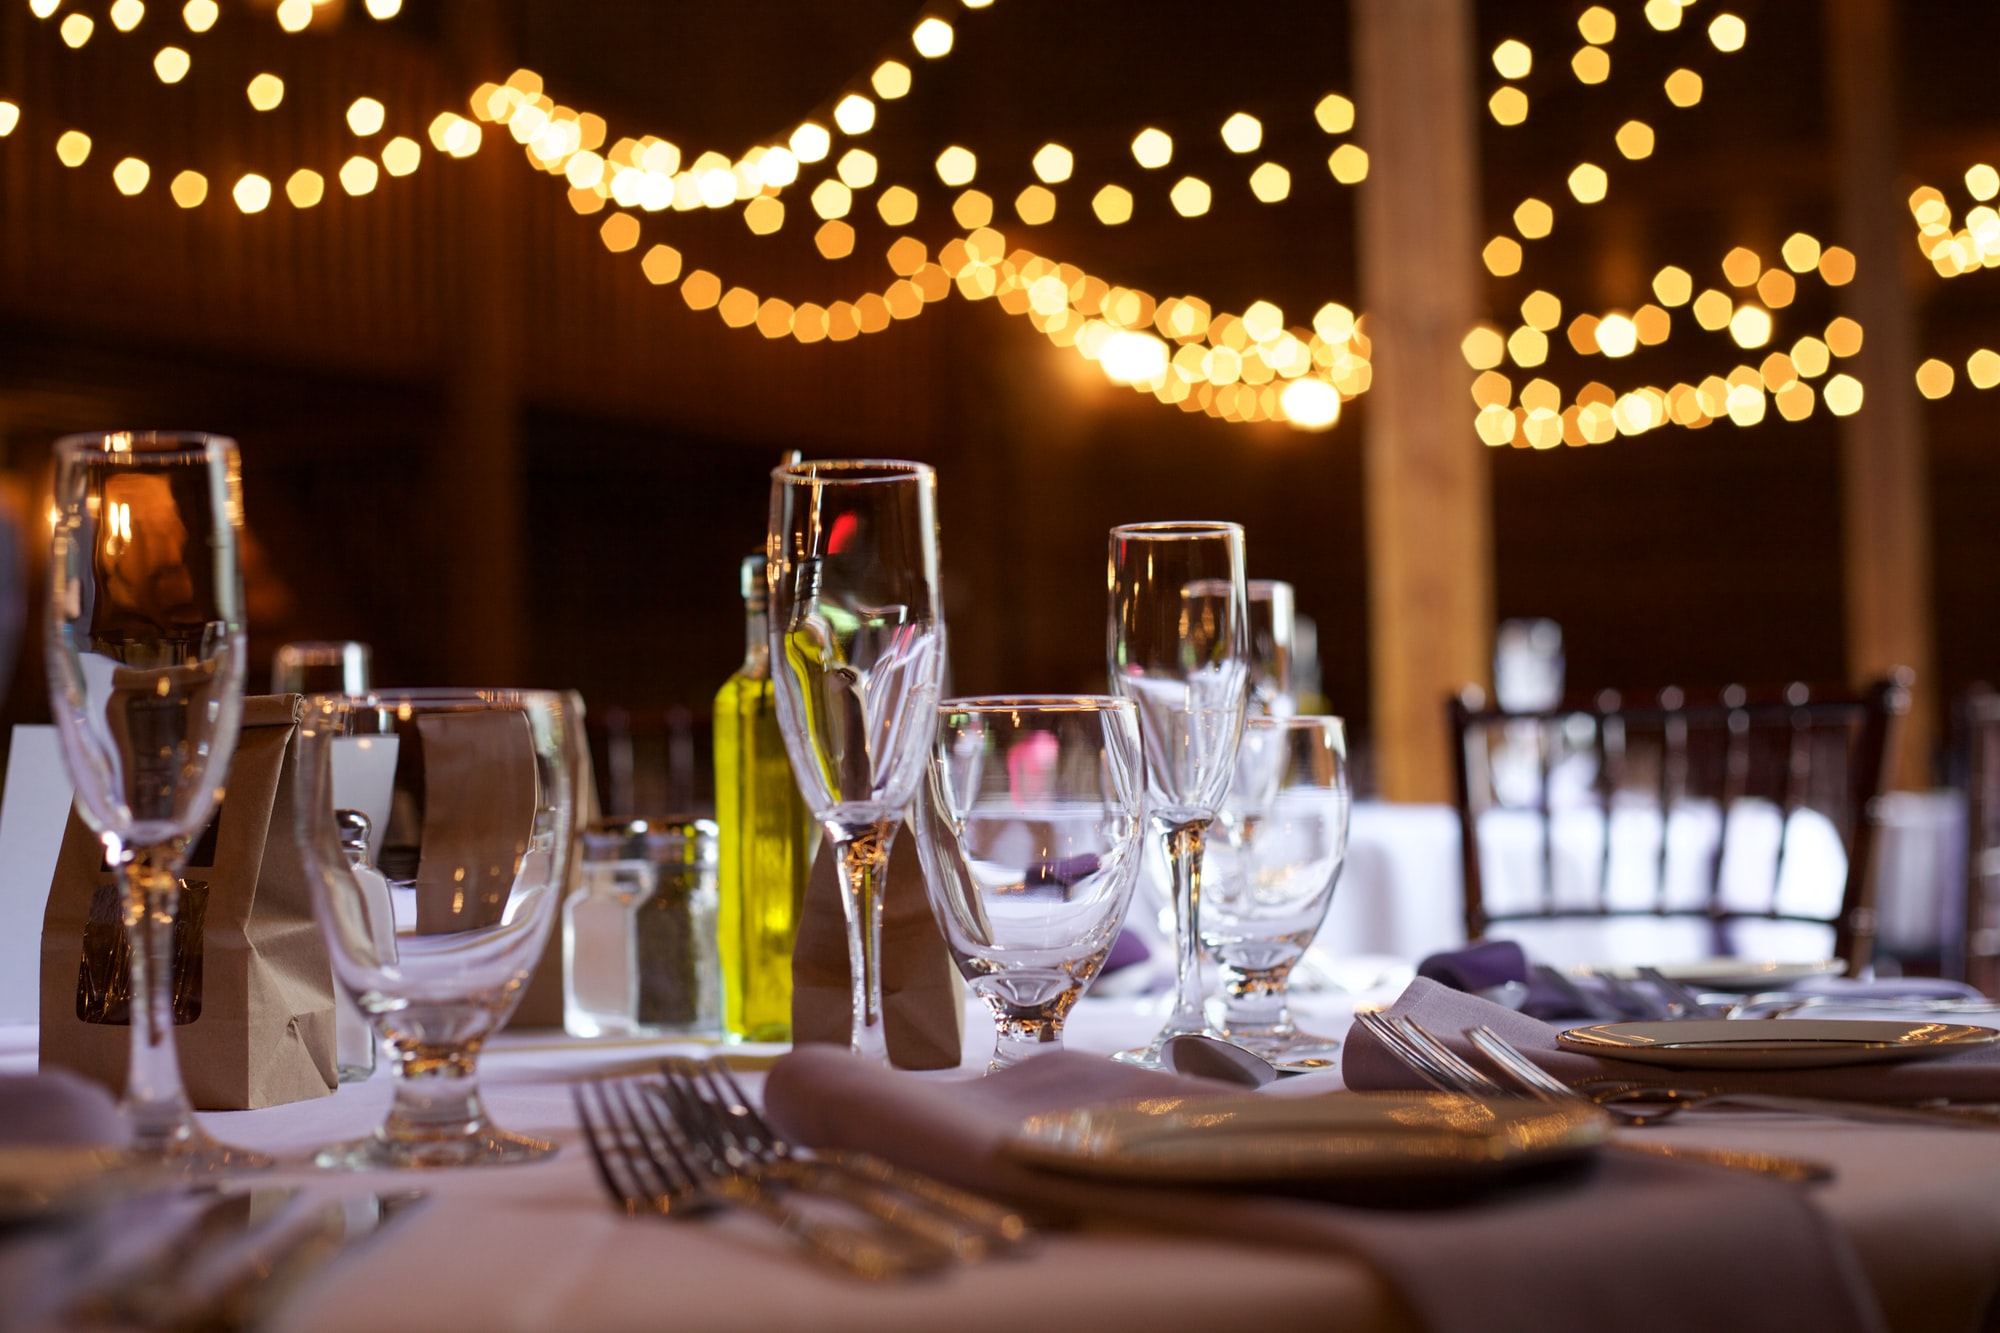 A table set for a fancy occasion; plates, glasses, silverware and napkins are all shown.